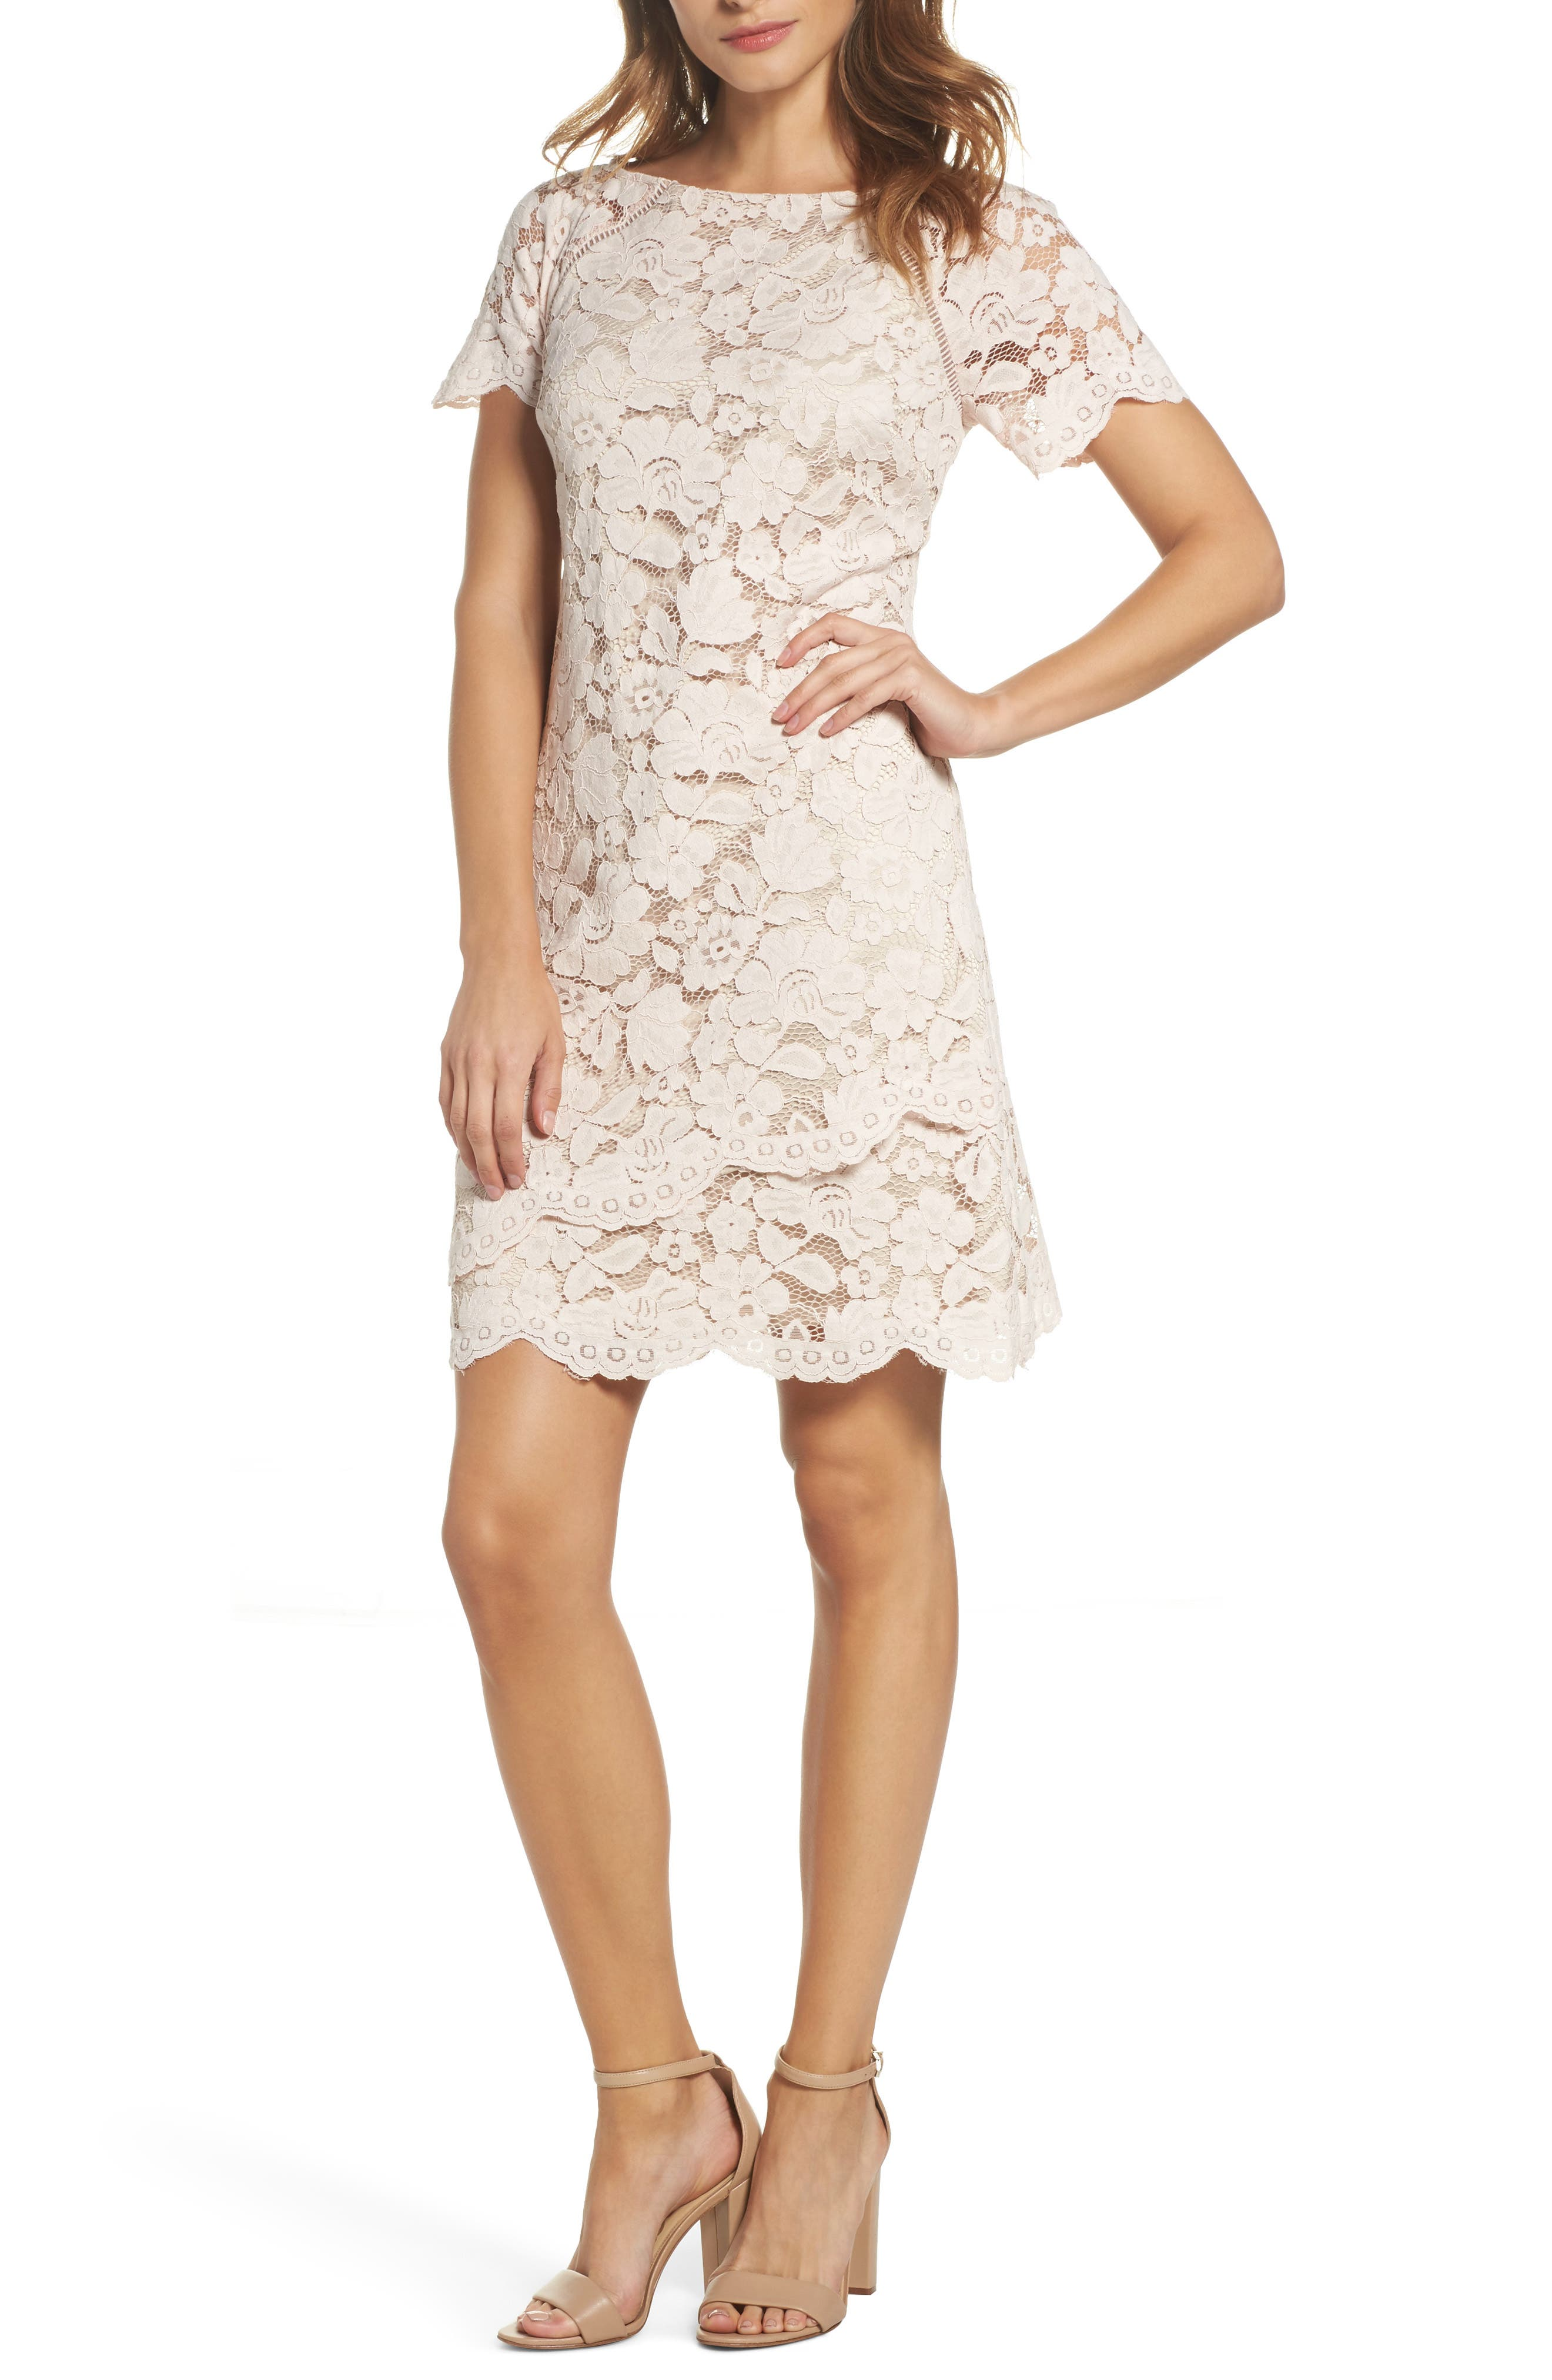 White party dress with sleeves